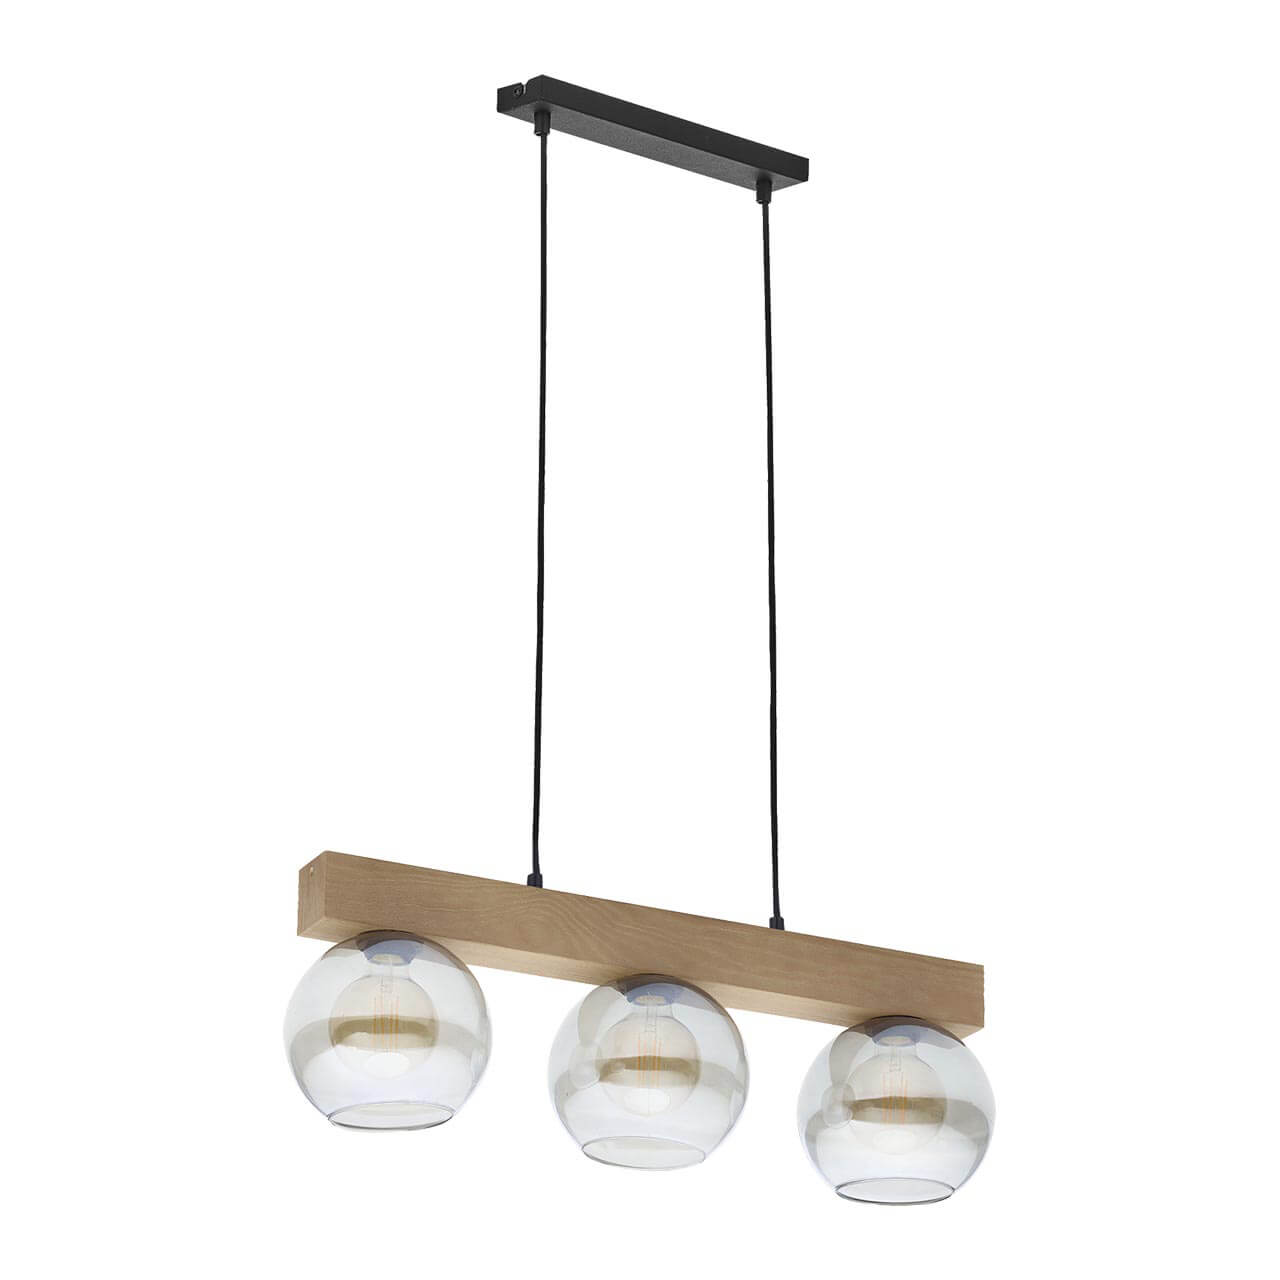 Люстра TK Lighting 4254 Artwood Glass